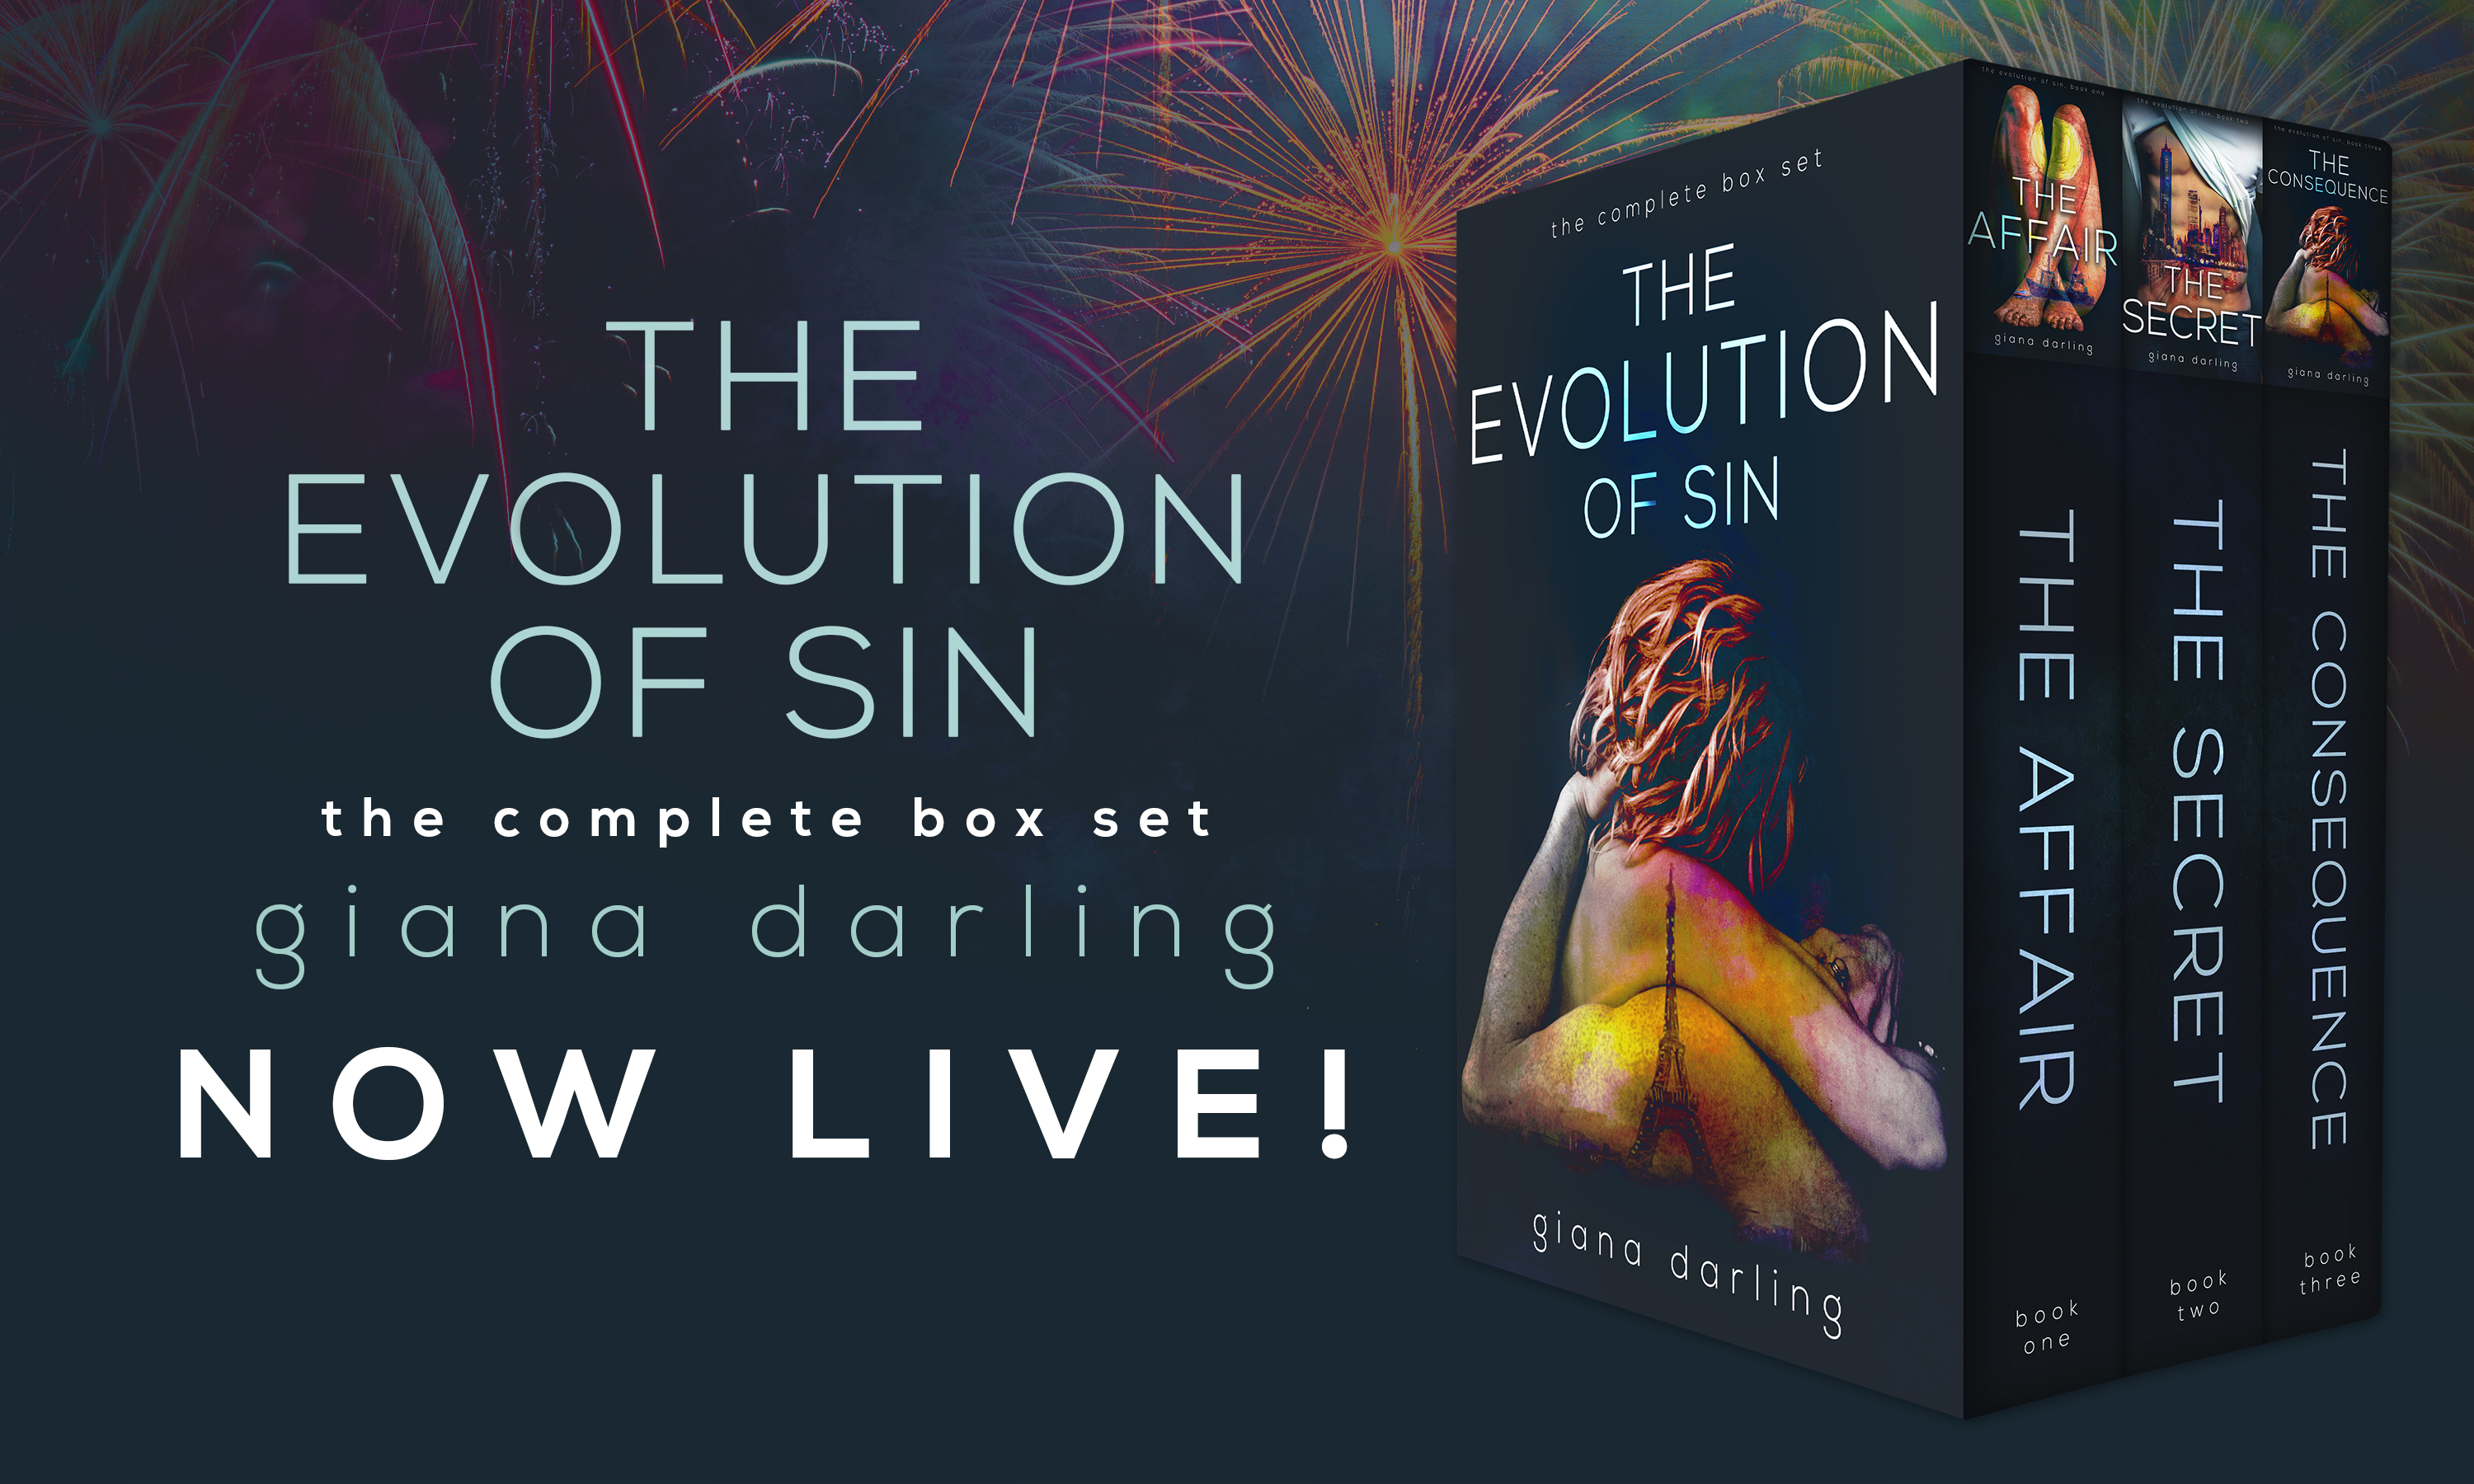 [New Release] THE EVOLUTION OF SIN by Giana Darling @GianaDarling @TheNextStepPR #Giveaway